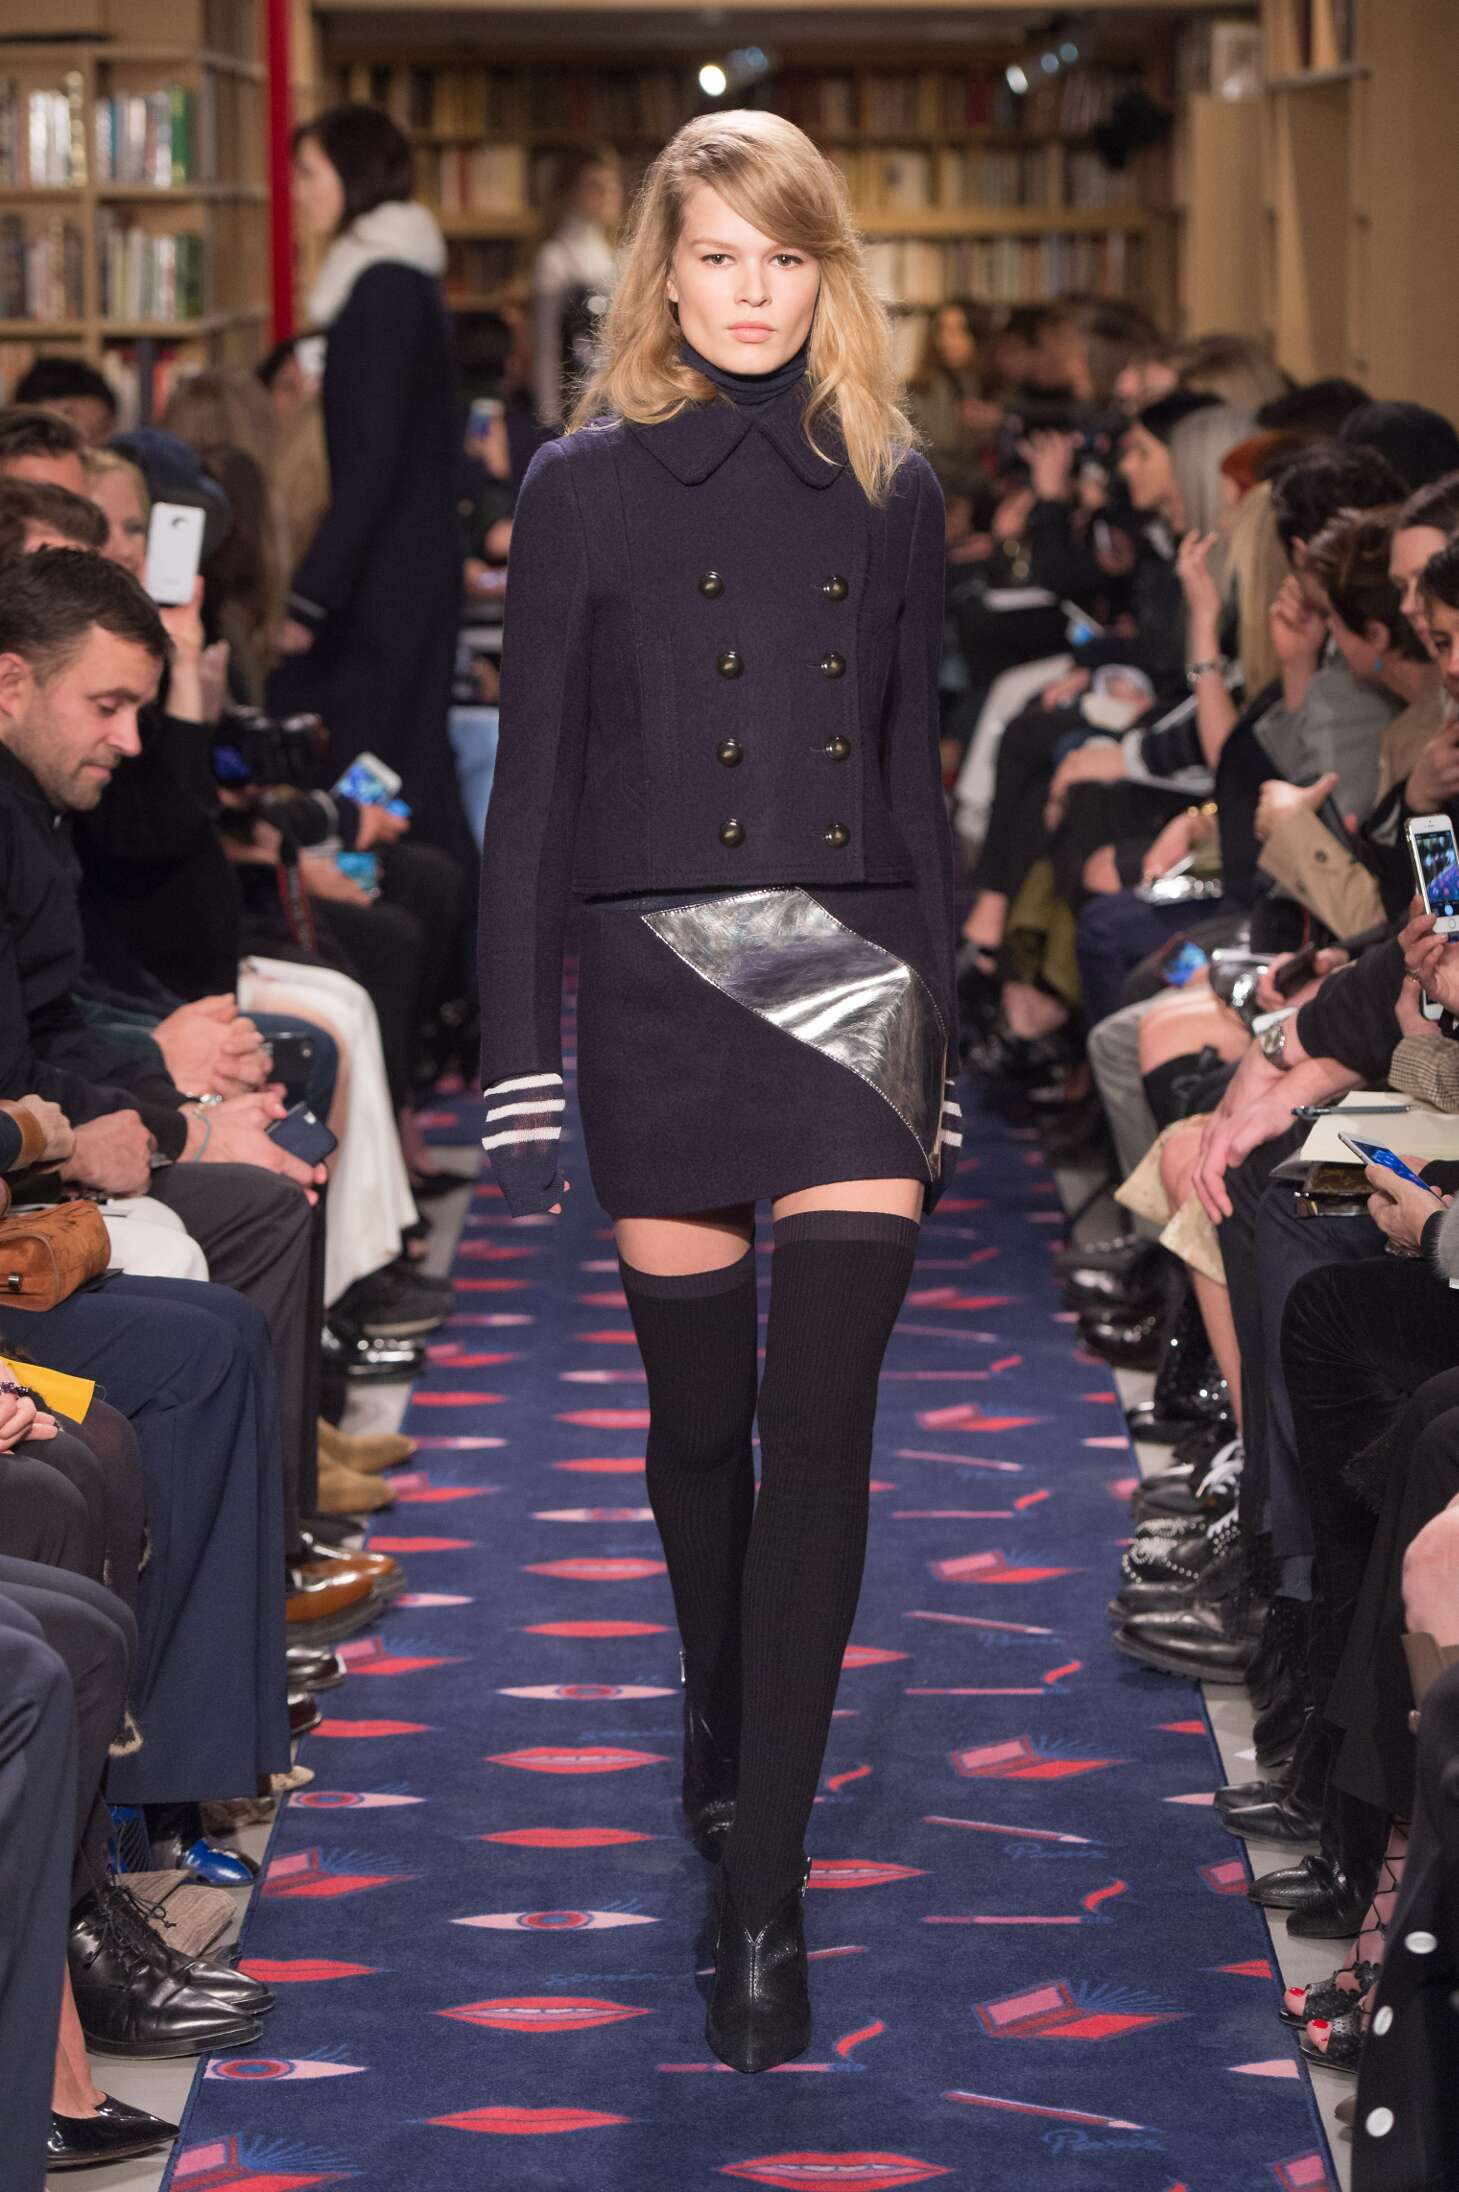 Winter 2015 Fashion Show Sonia Rykiel Collection